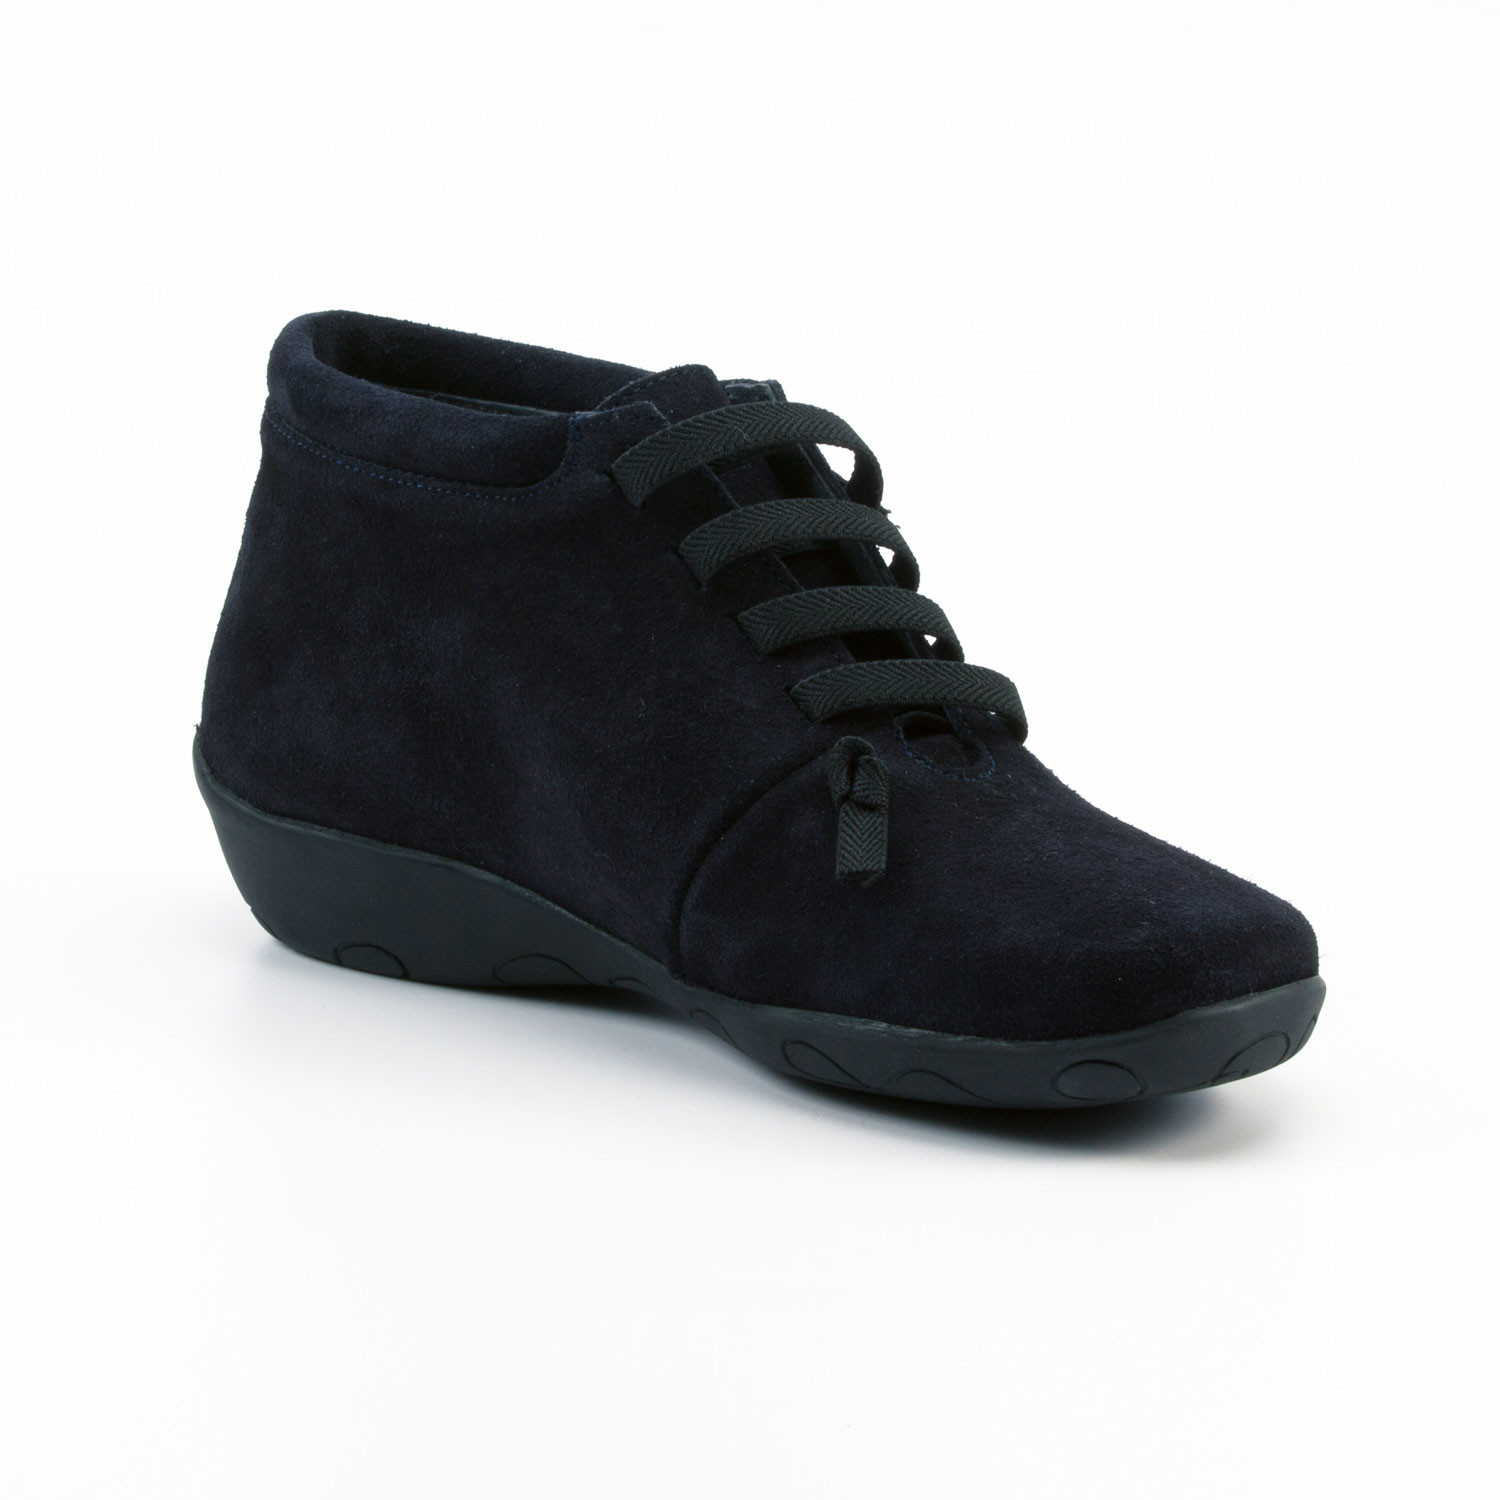 Boot, darkblue